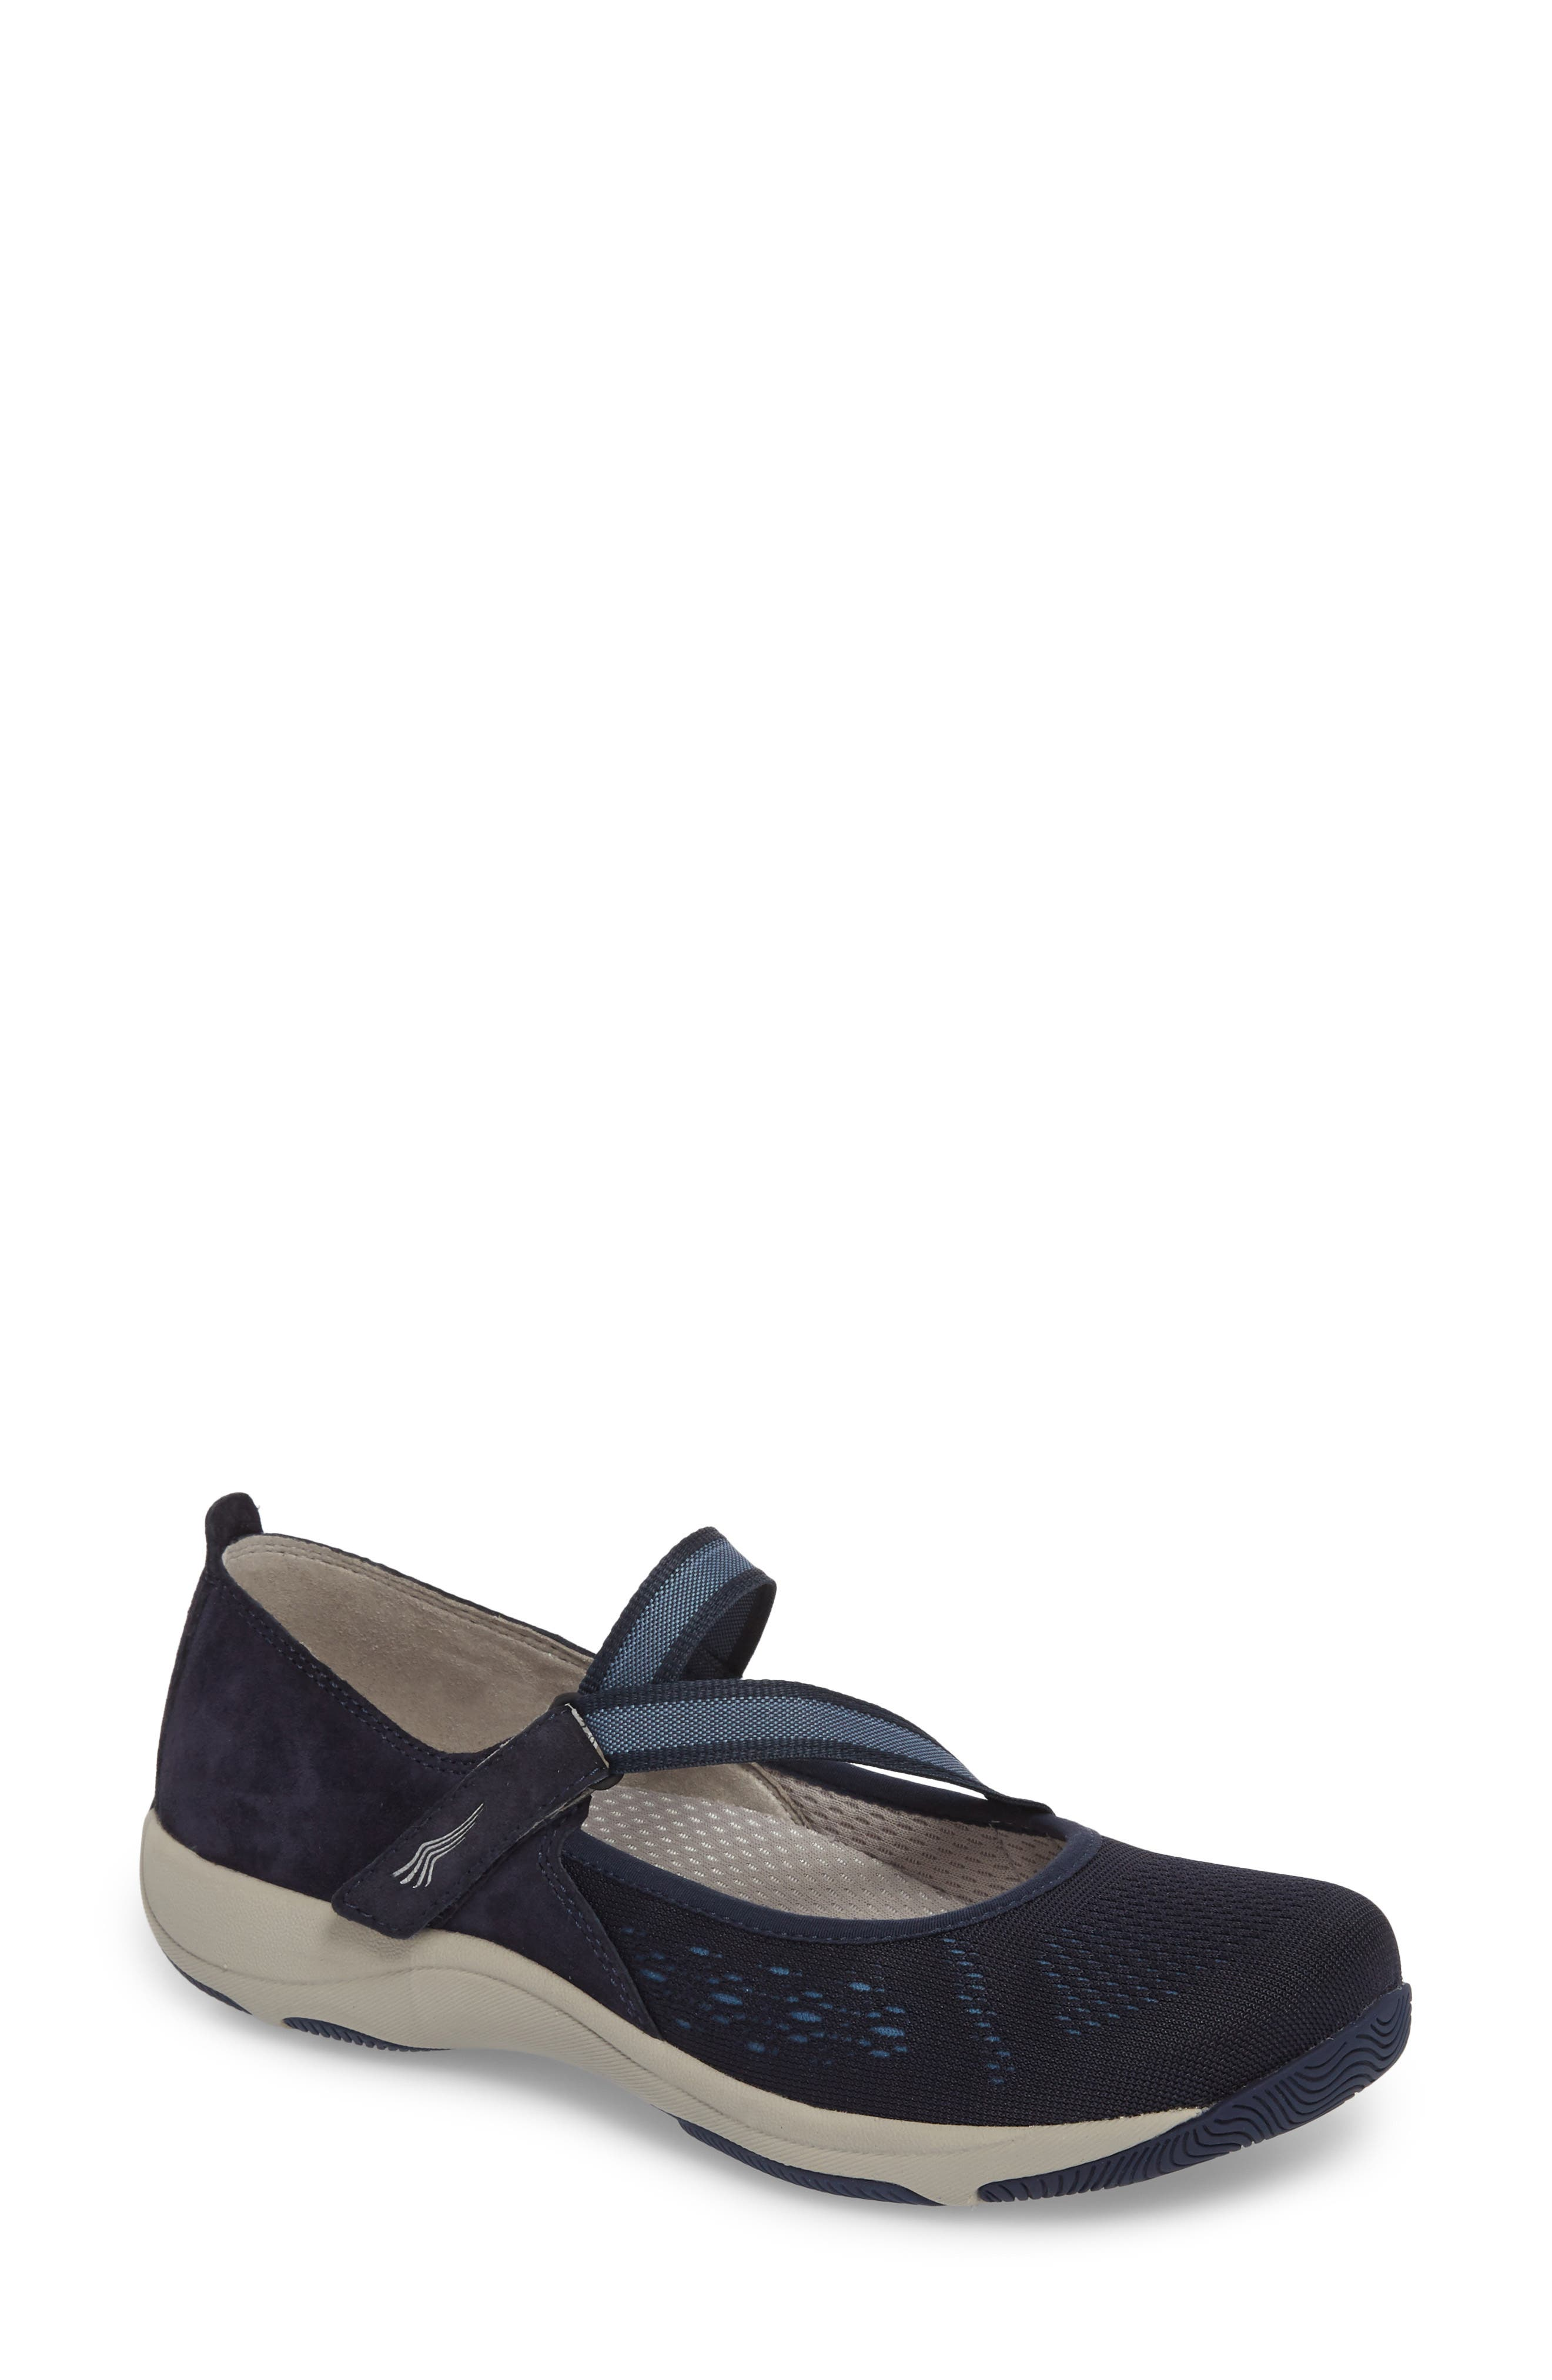 Haven Mary Jane Sneaker,                             Main thumbnail 1, color,                             NAVY SUEDE